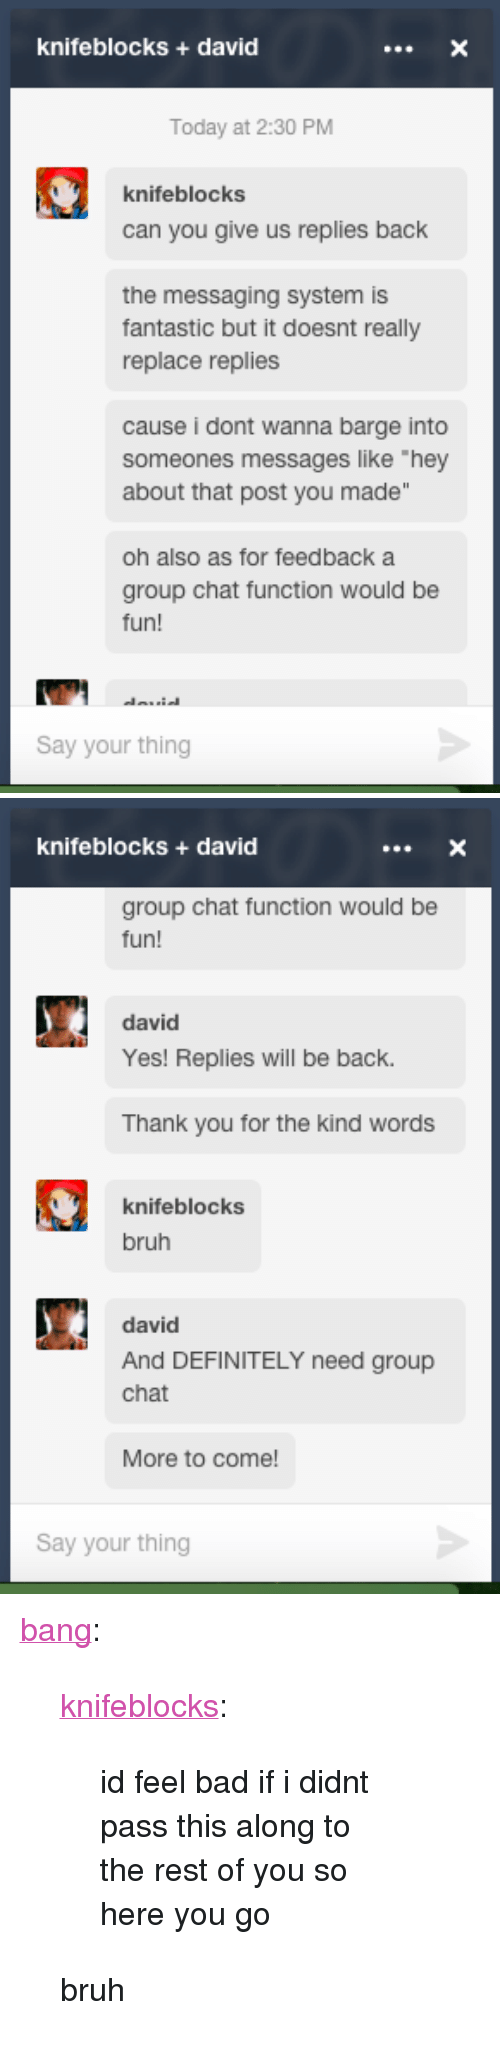 """barge: knifeblocks +david  Today at 2:30 PM  knifeblocks  can you give us replies back  the messaging system is  fantastic but it doesnt really  replace replies  cause i dont wanna barge into  someones messages like """"hey  about that post you made""""  oh also as for feedback a  group chat function would be  fun!  Say your thing   knifeblocks +david  group chat function would be  fun!  david  Yes! Replies will be back.  Thank you for the kind words  knifeblocks  bruh  david  And DEFINITELY need group  chat  More to come!  Say your thing <p><a class=""""tumblr_blog"""" href=""""http://bang.tumblr.com/post/132981993272"""" target=""""_blank"""">bang</a>:</p> <blockquote> <p><a class=""""tumblr_blog"""" href=""""http://knifeblocks.tumblr.com/post/132950933672"""" target=""""_blank"""">knifeblocks</a>:</p> <blockquote> <p>id feel bad if i didnt pass this along to the rest of you so here you go</p> </blockquote> <p>bruh</p> </blockquote>             <p></p>"""